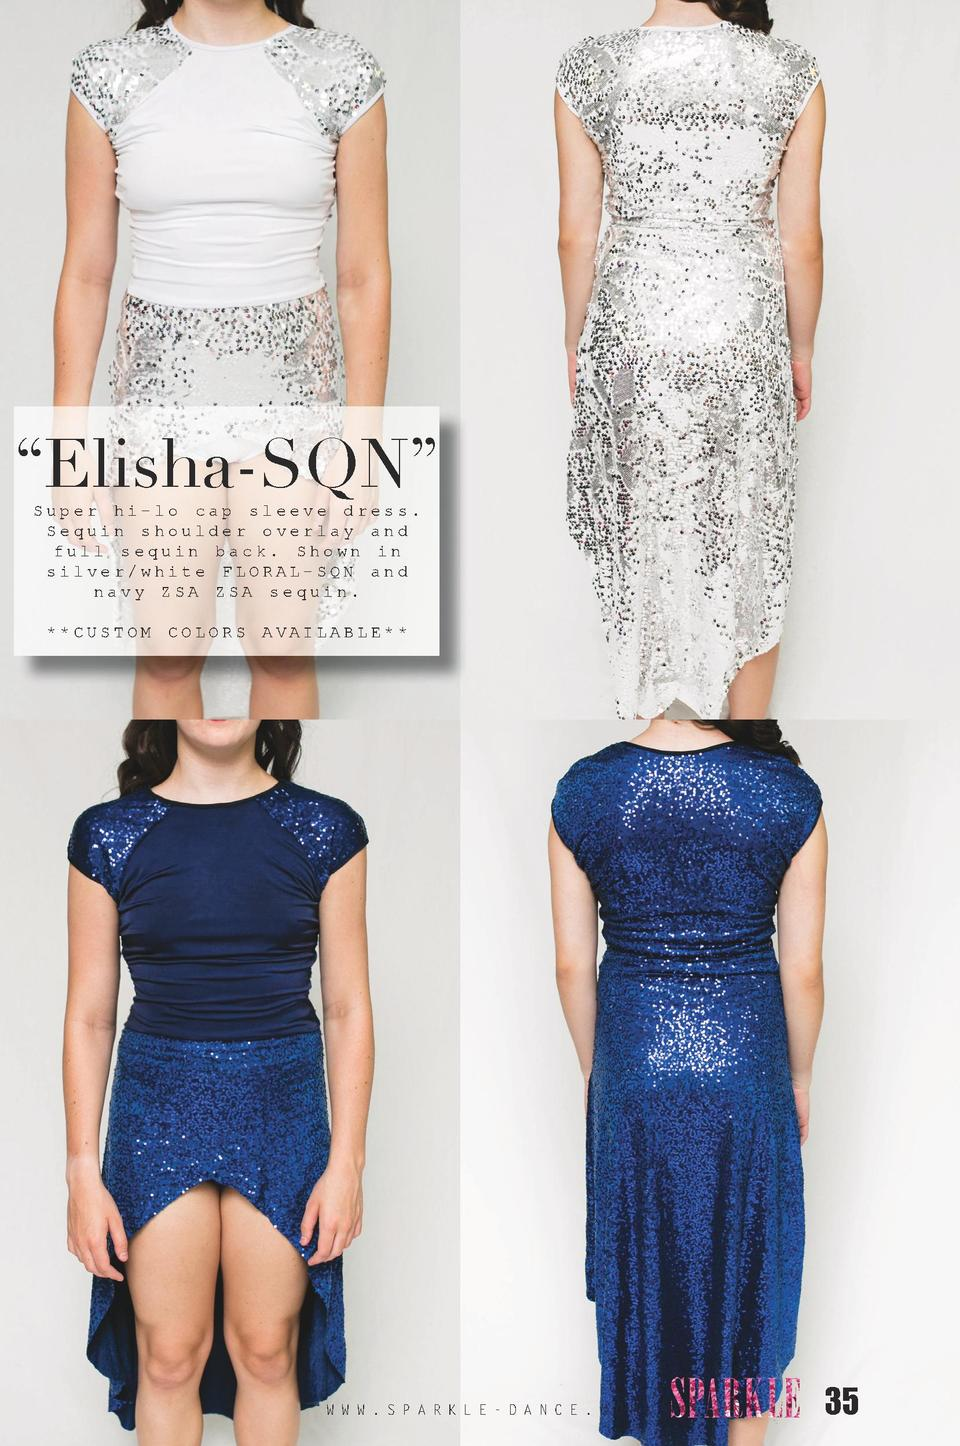 Elisha-SQN    Super hi-lo cap sleeve dress. Sequin shoulder overlay and full sequin back. Shown in silver white FLORAL-...